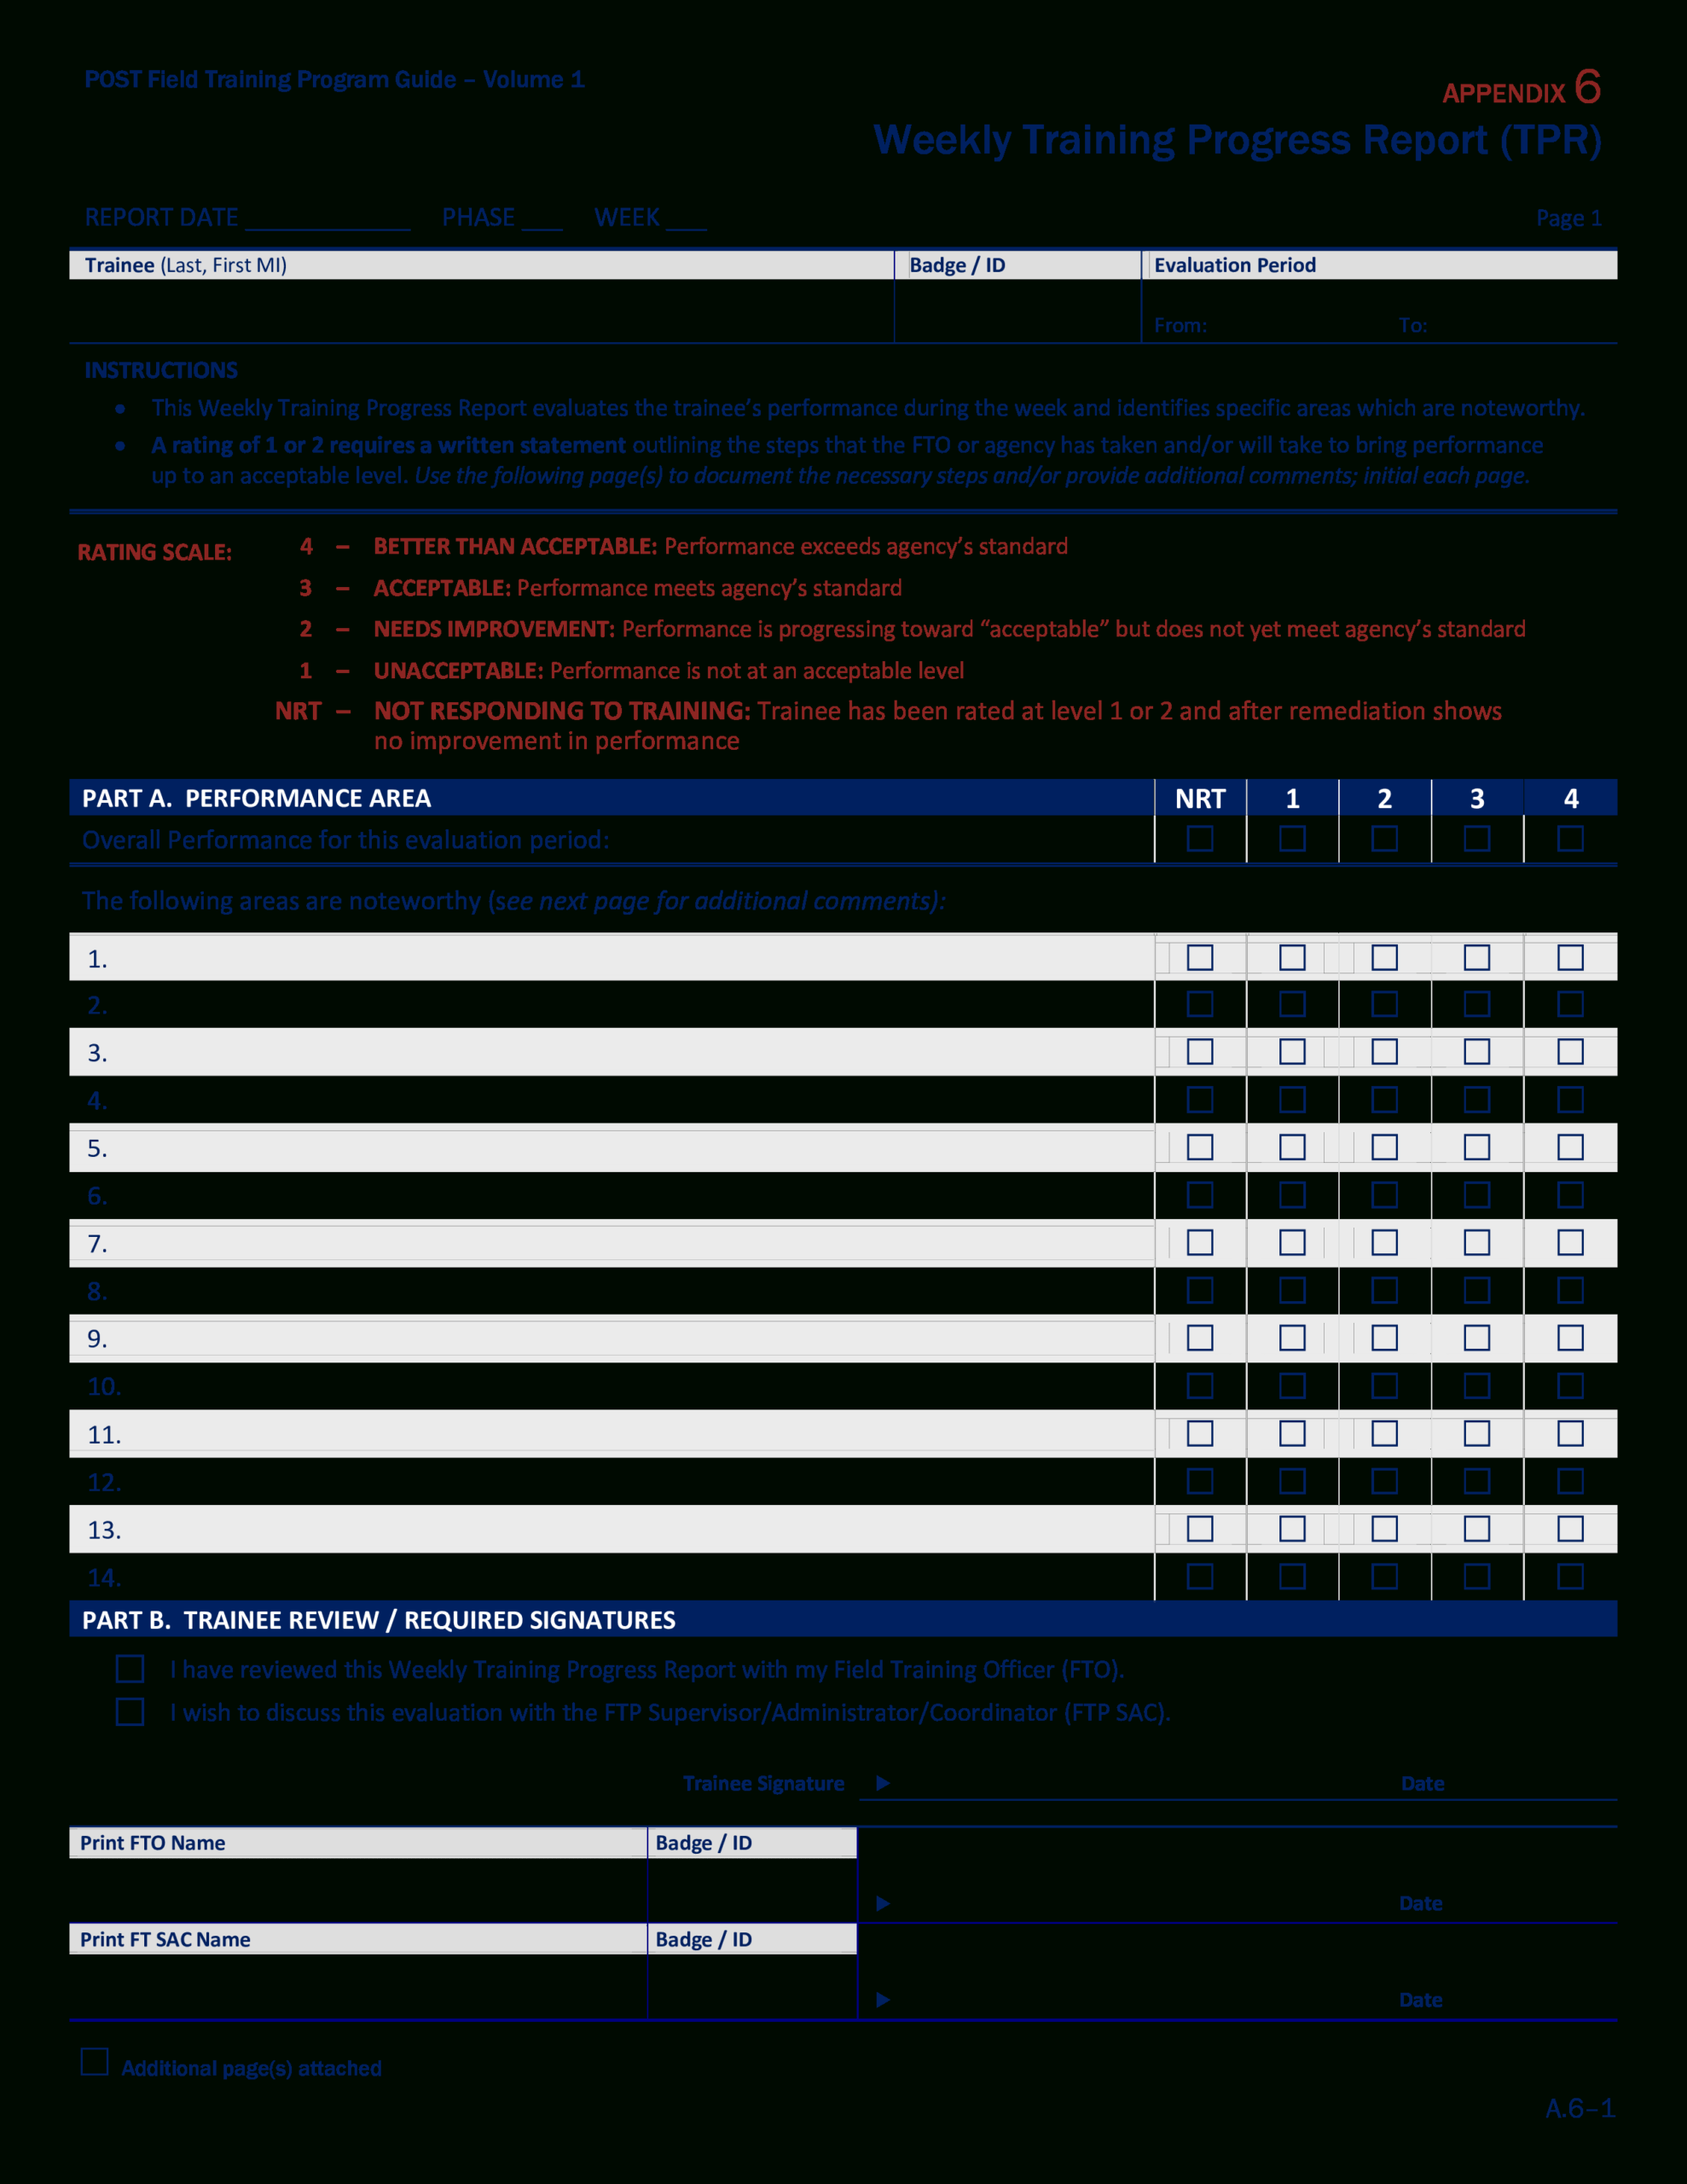 Weekly Training Progress Report | Templates At For After Training Report Template